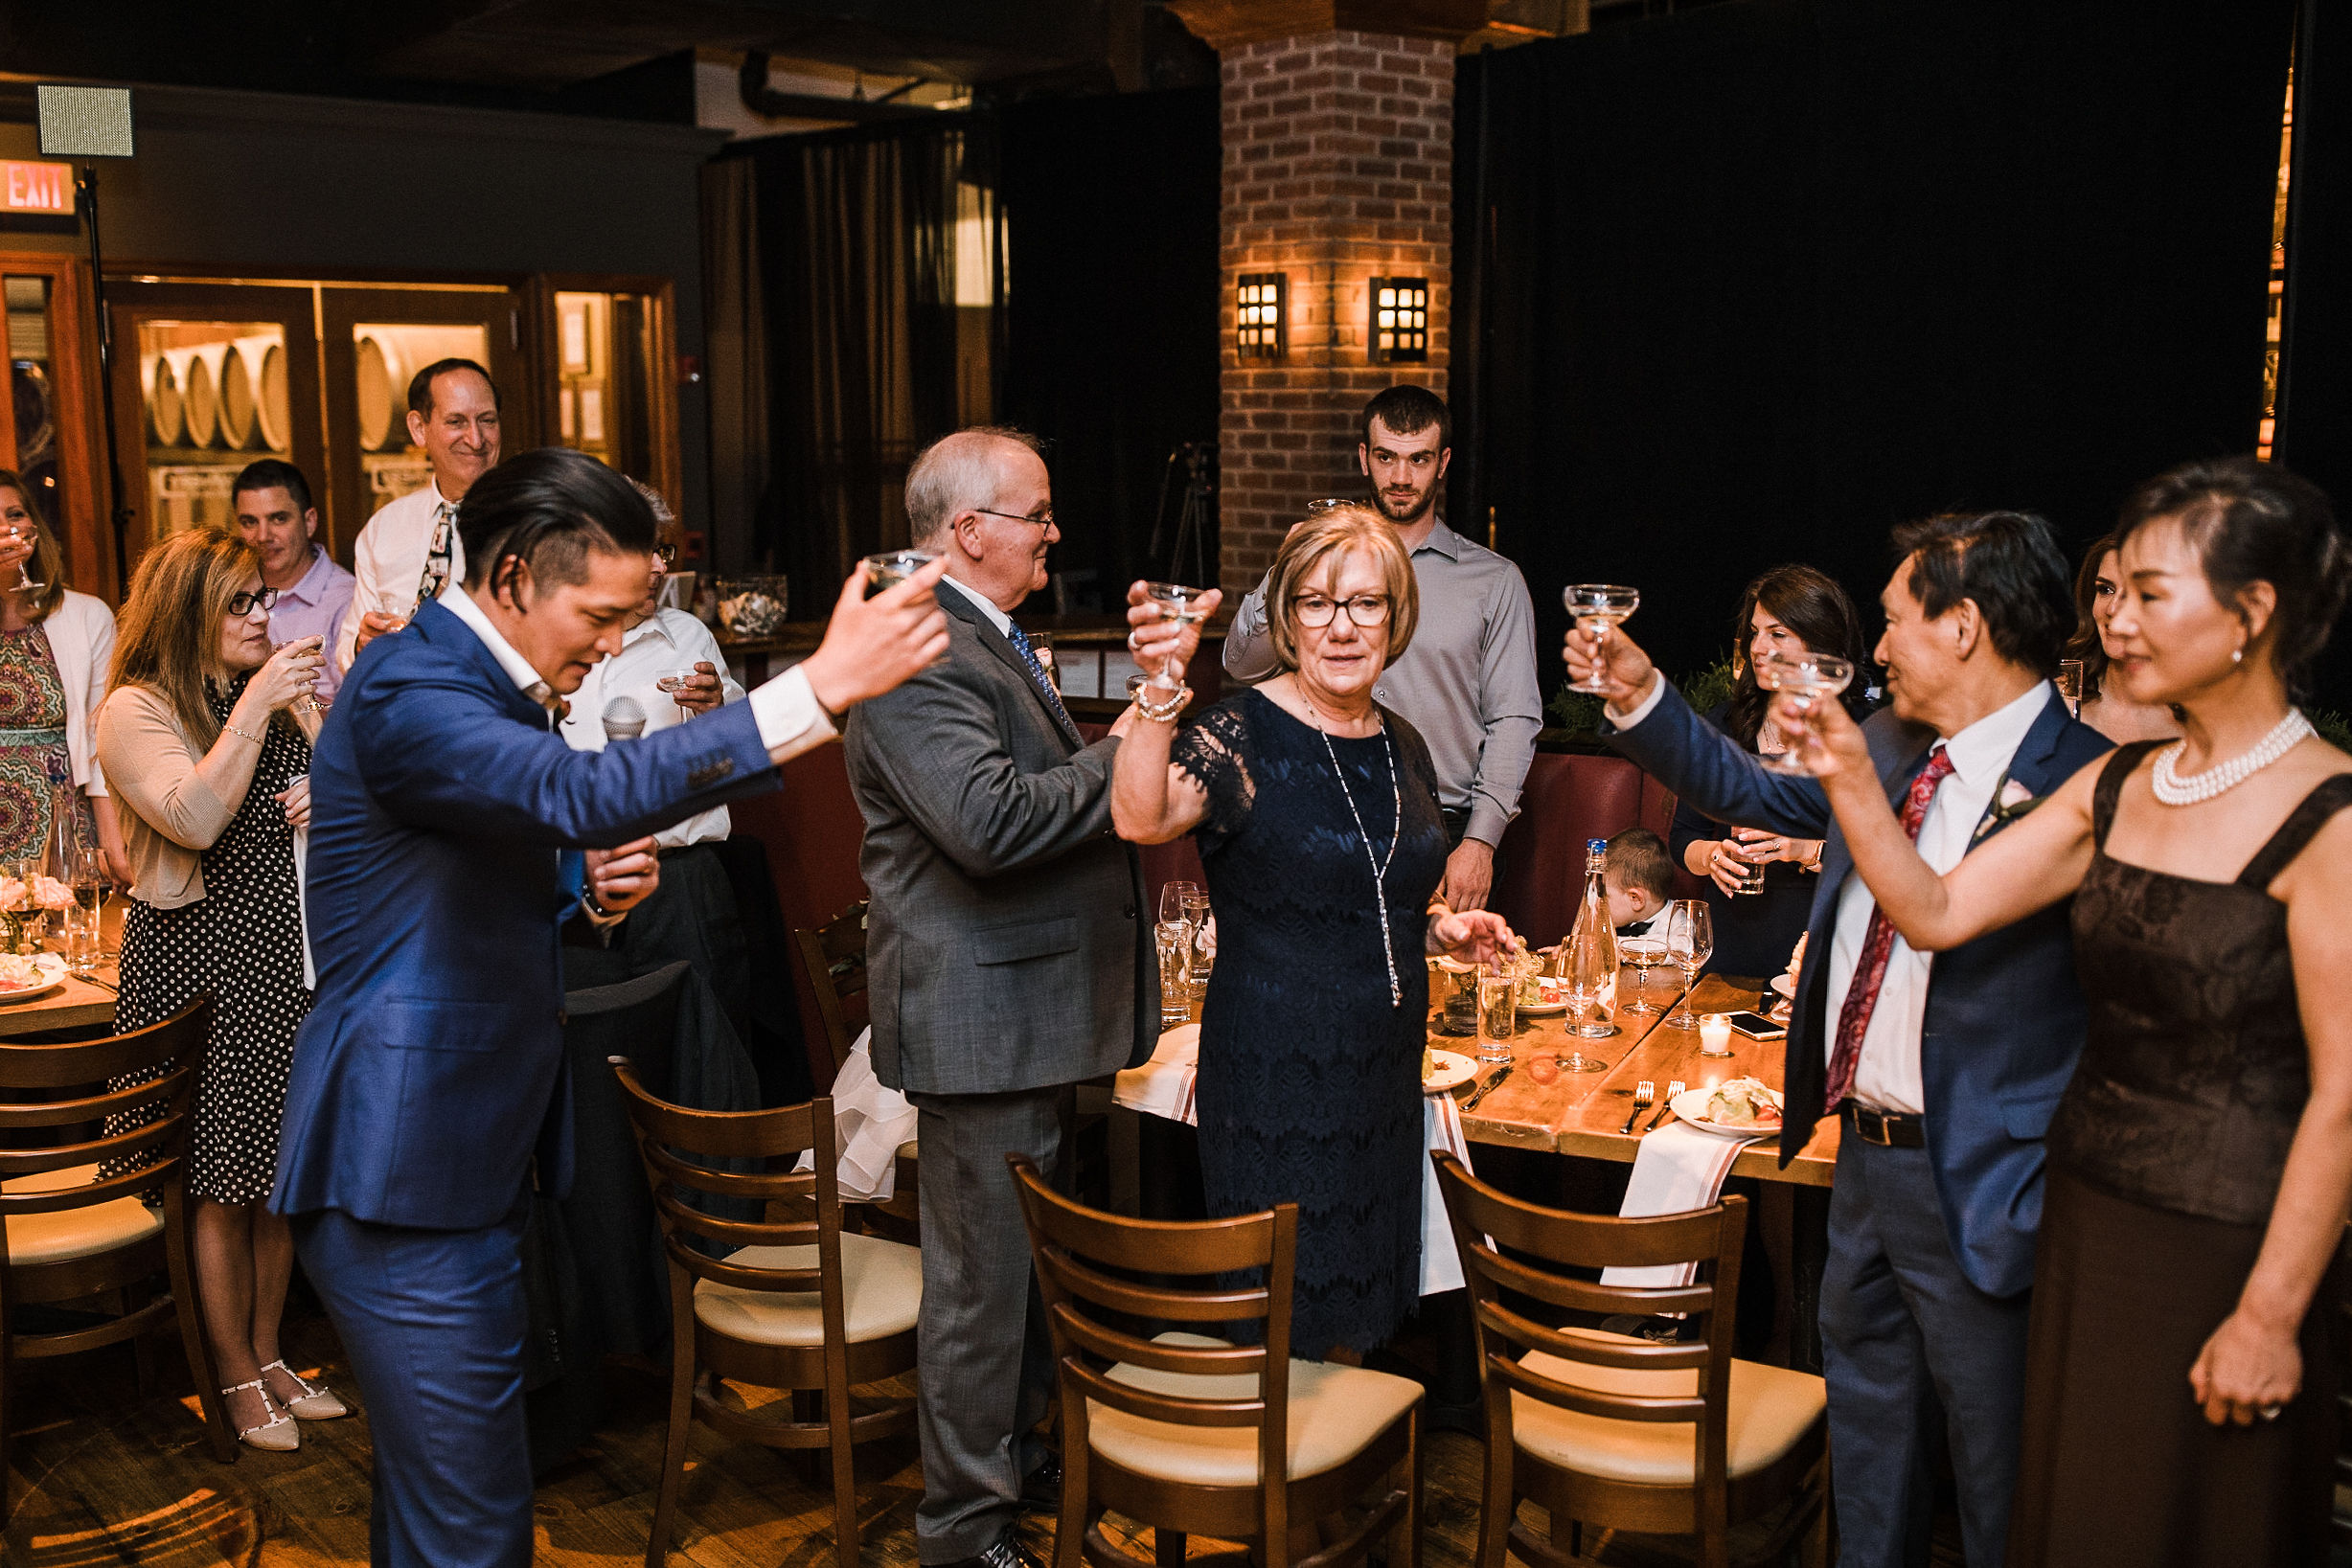 guests toasting at wedding reception at City Winery in Washington DC